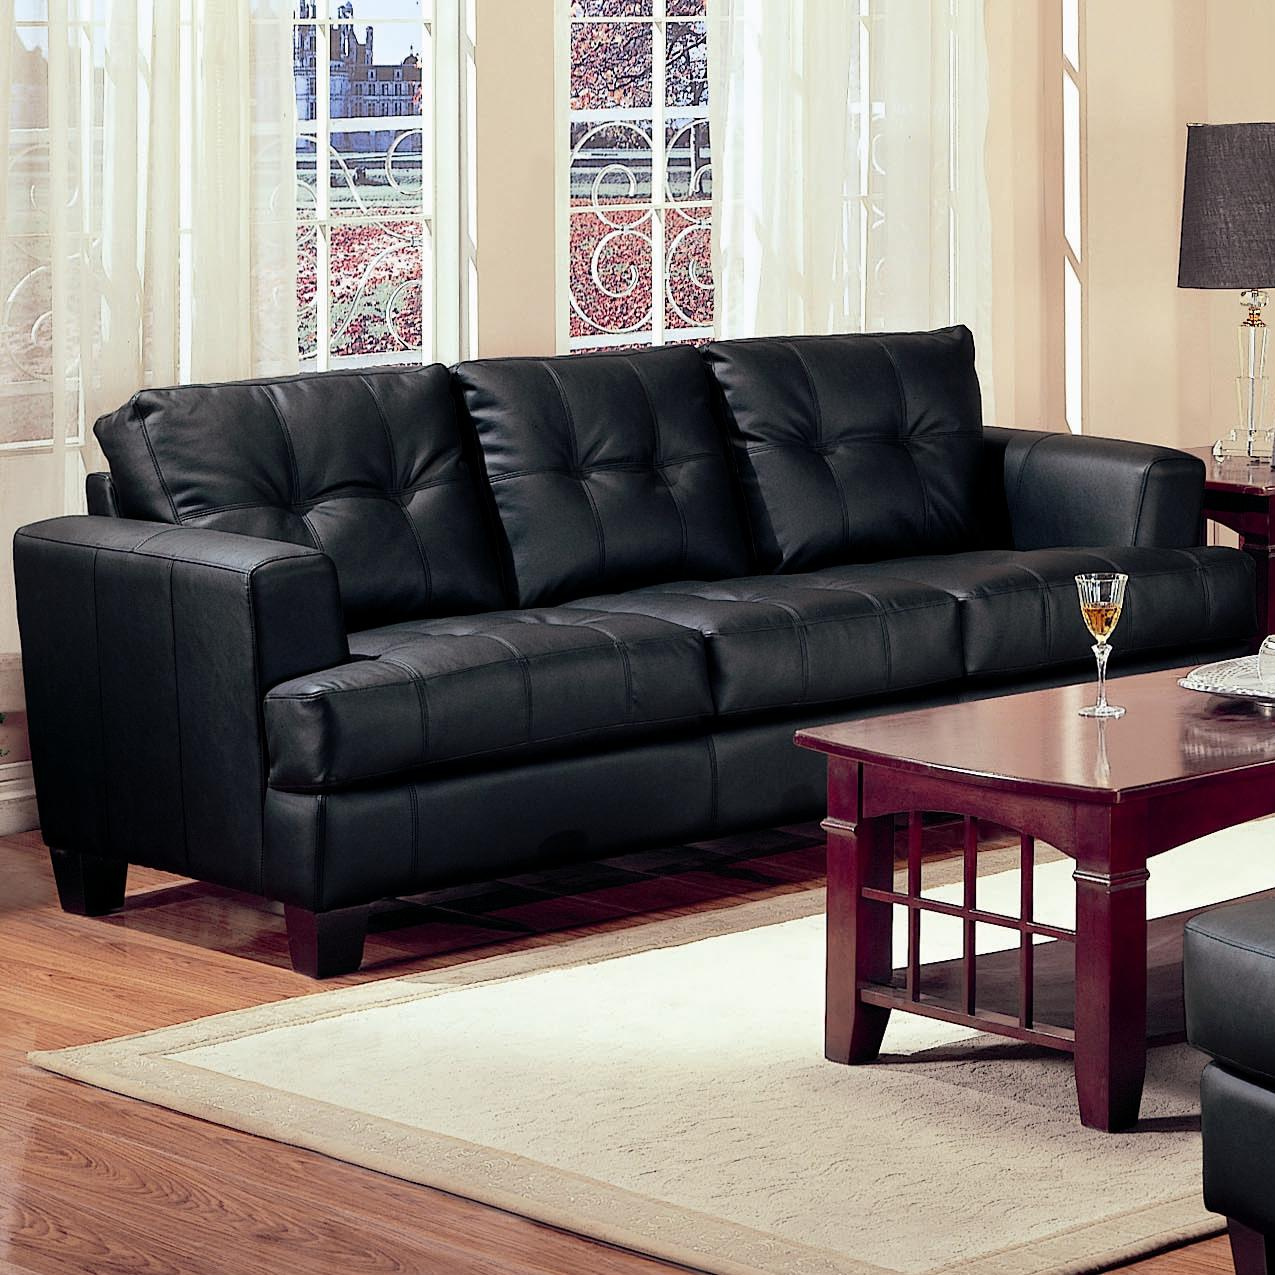 Coaster Furniture Samuel Black Sofa